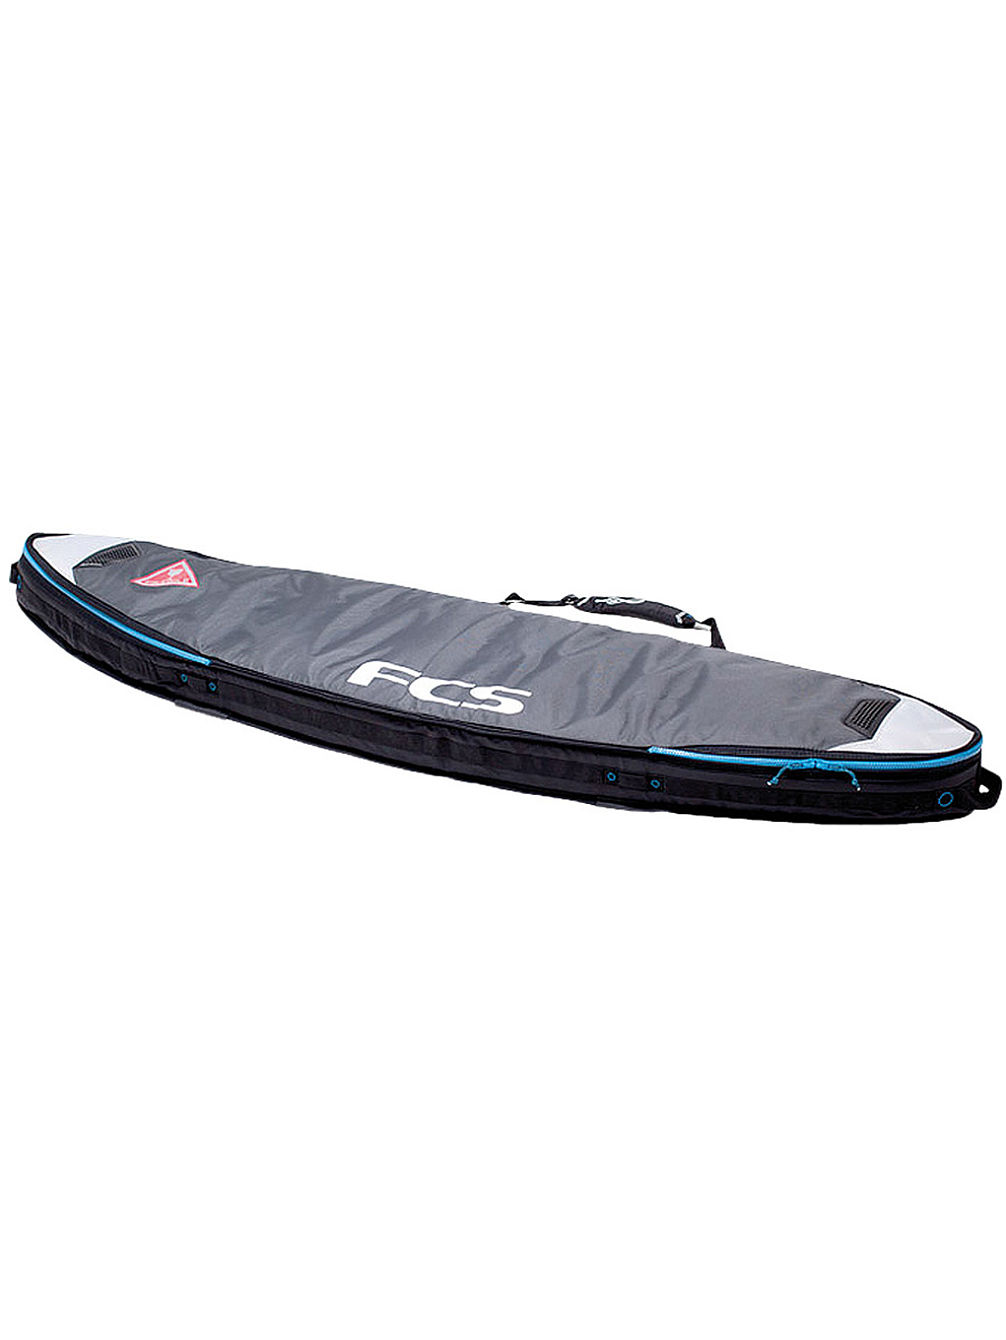 fcs-double-travel-cover-shortboard-63-greyy